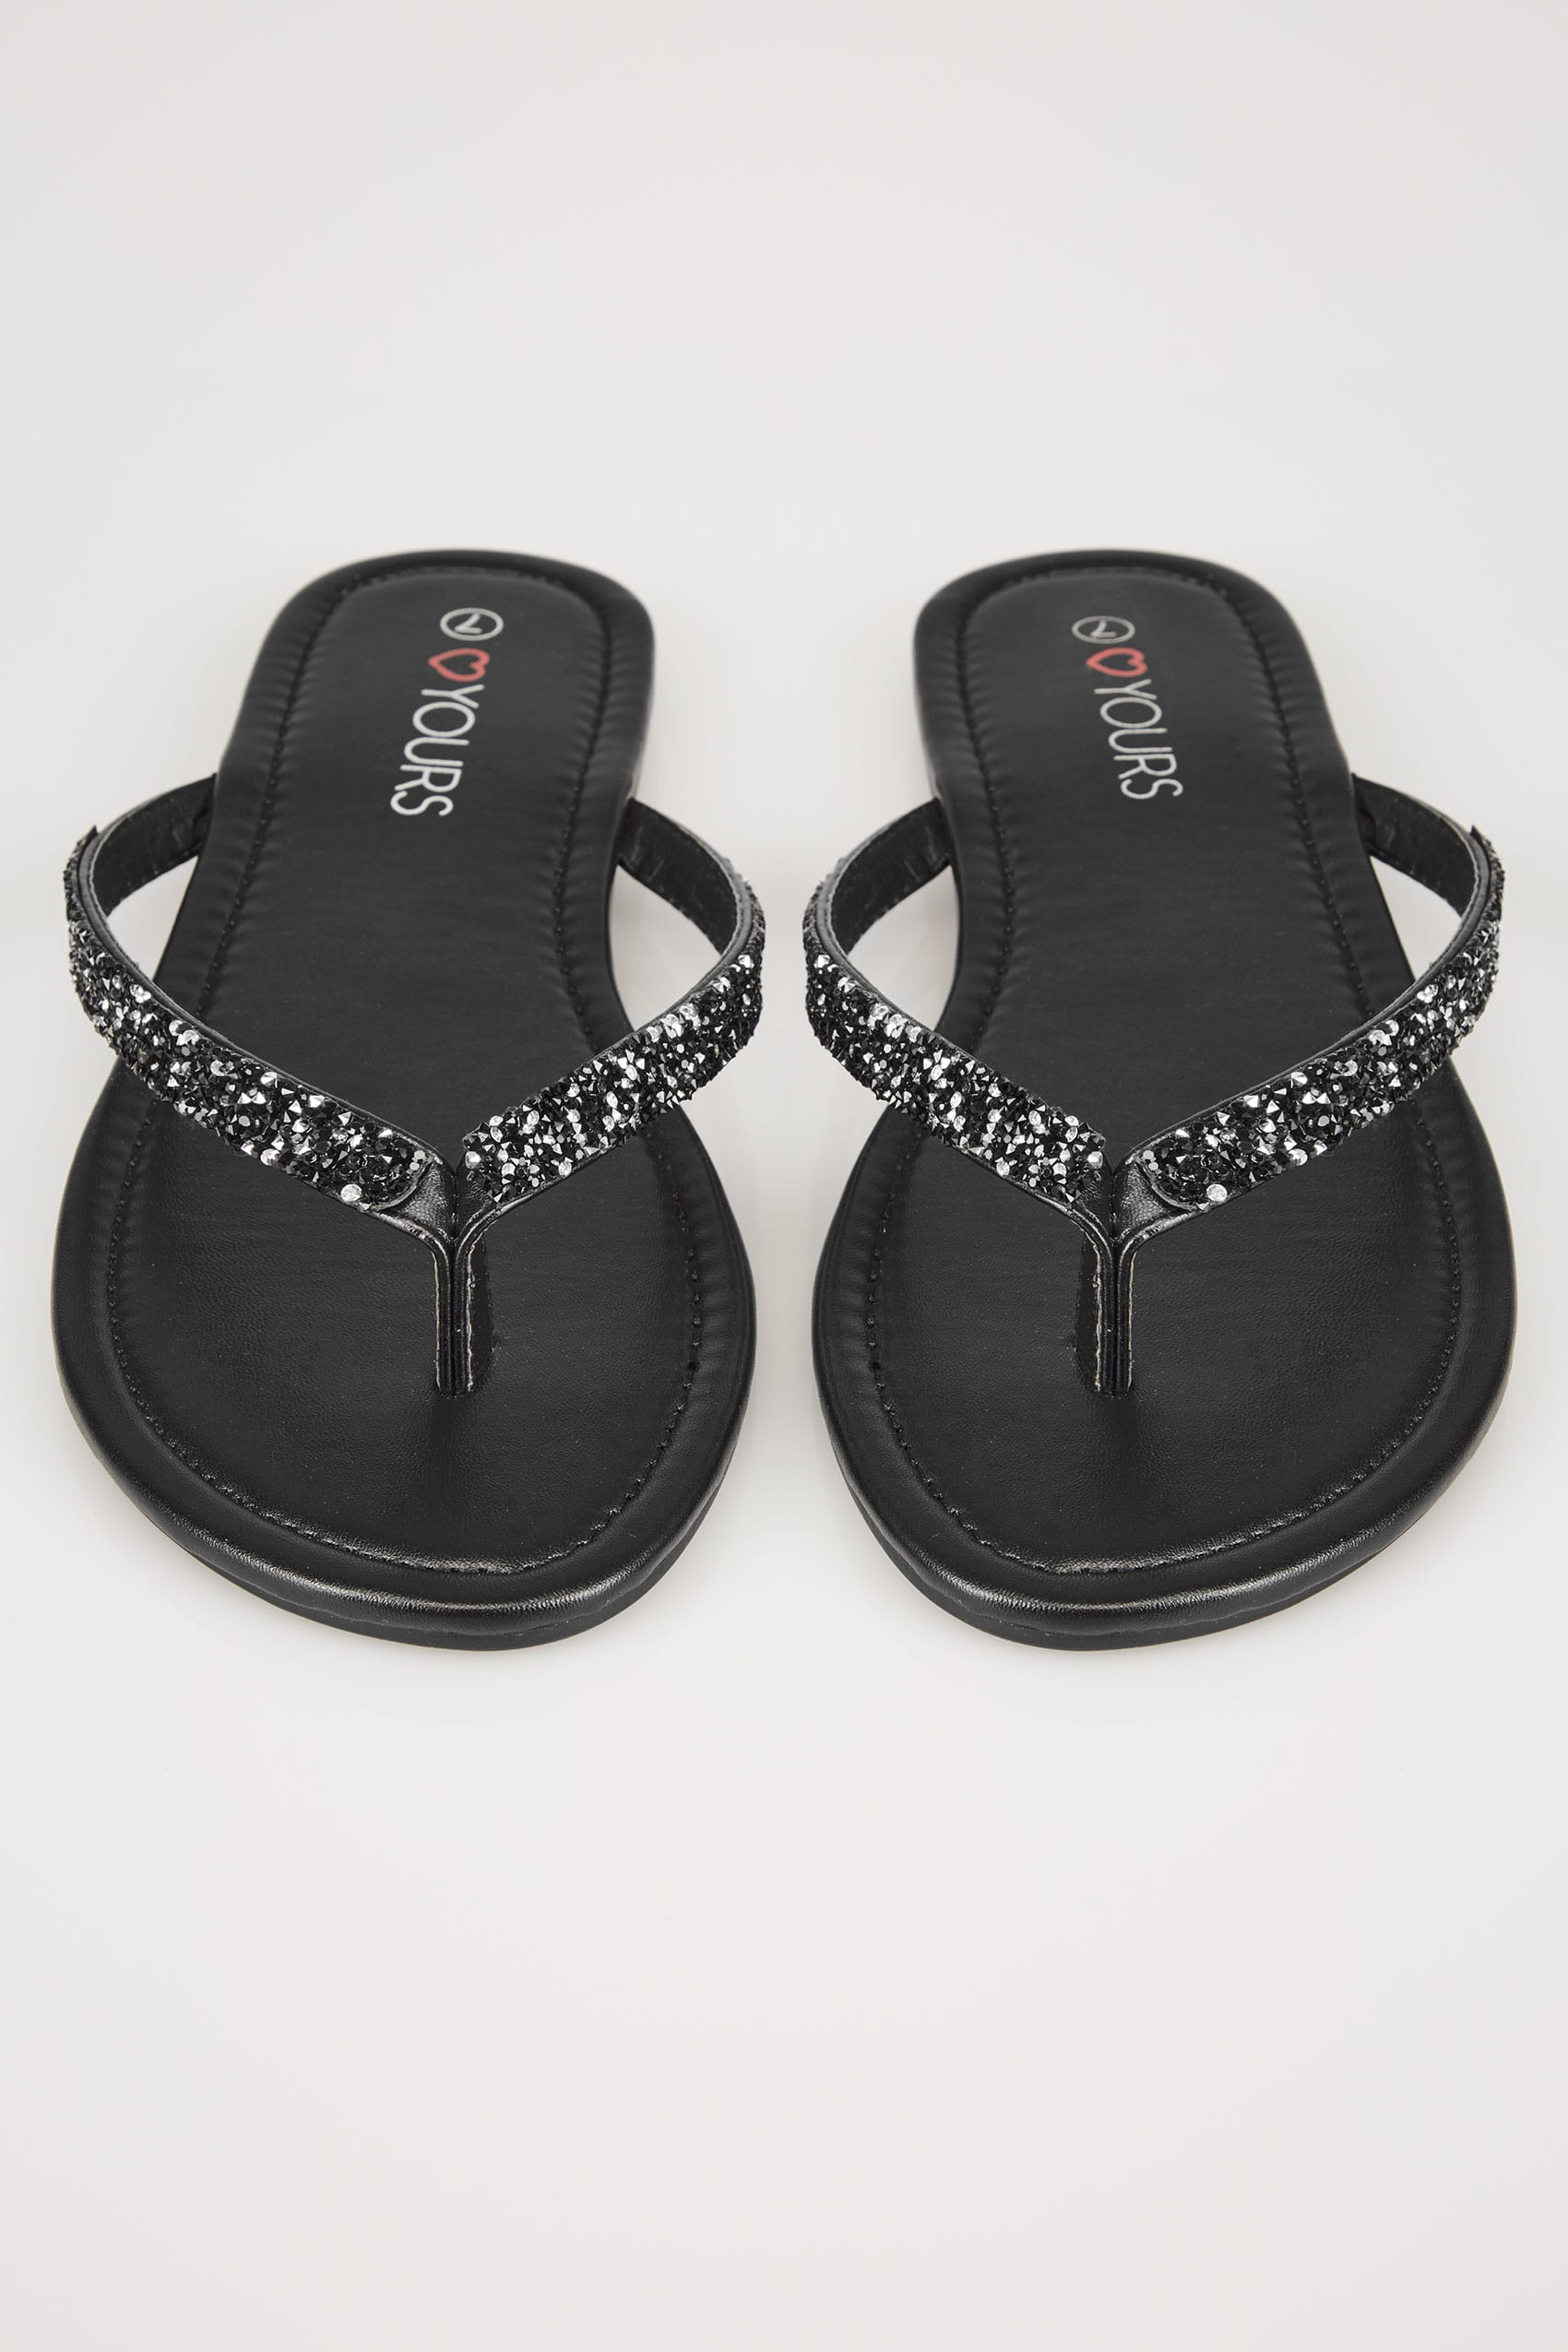 Black Sandals With Glitter Straps In Eee Fit-7672